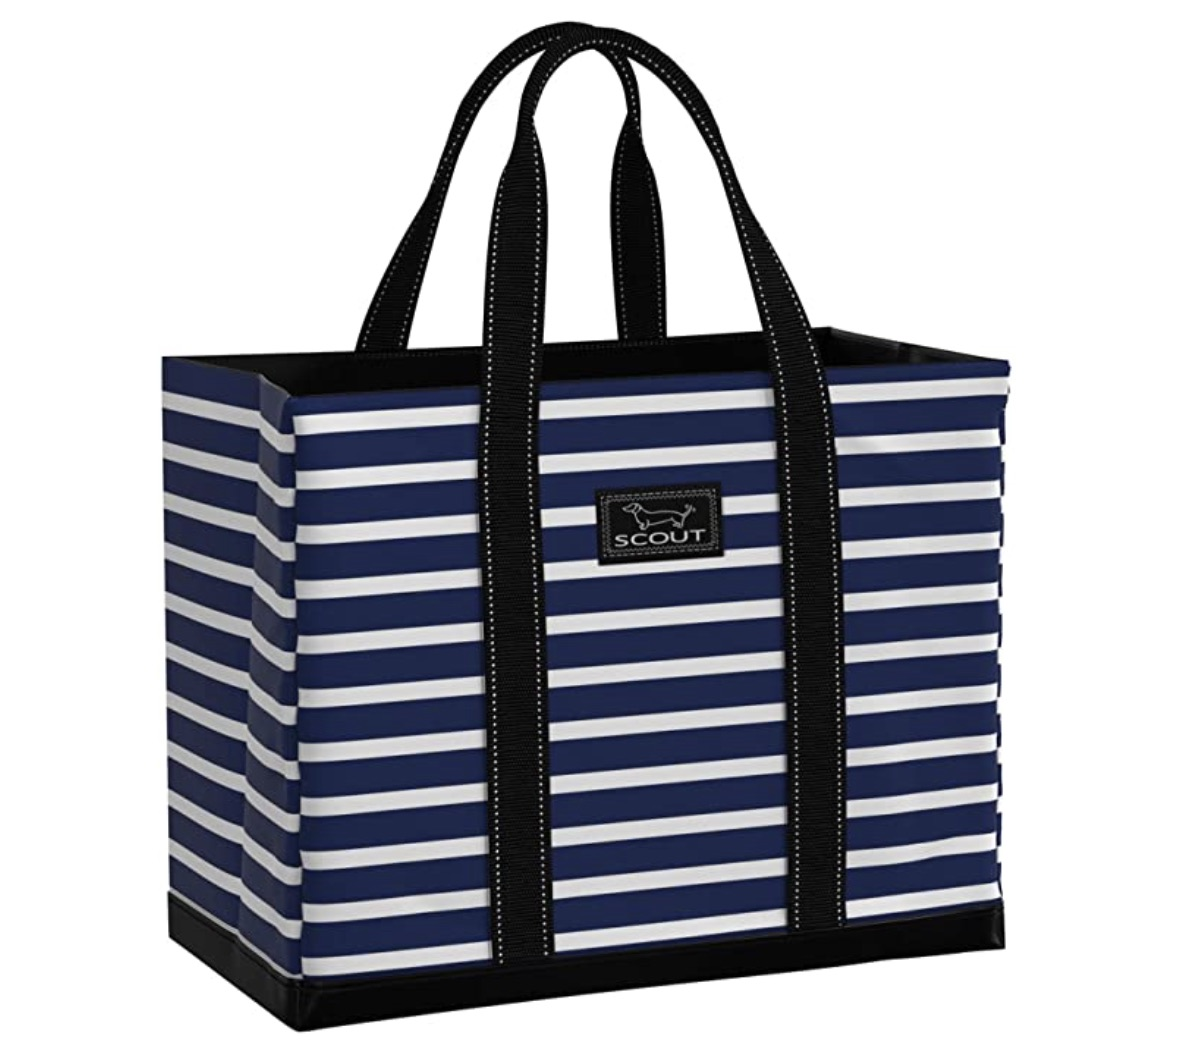 SCOUT Extra Large Lightweight Tote Bag